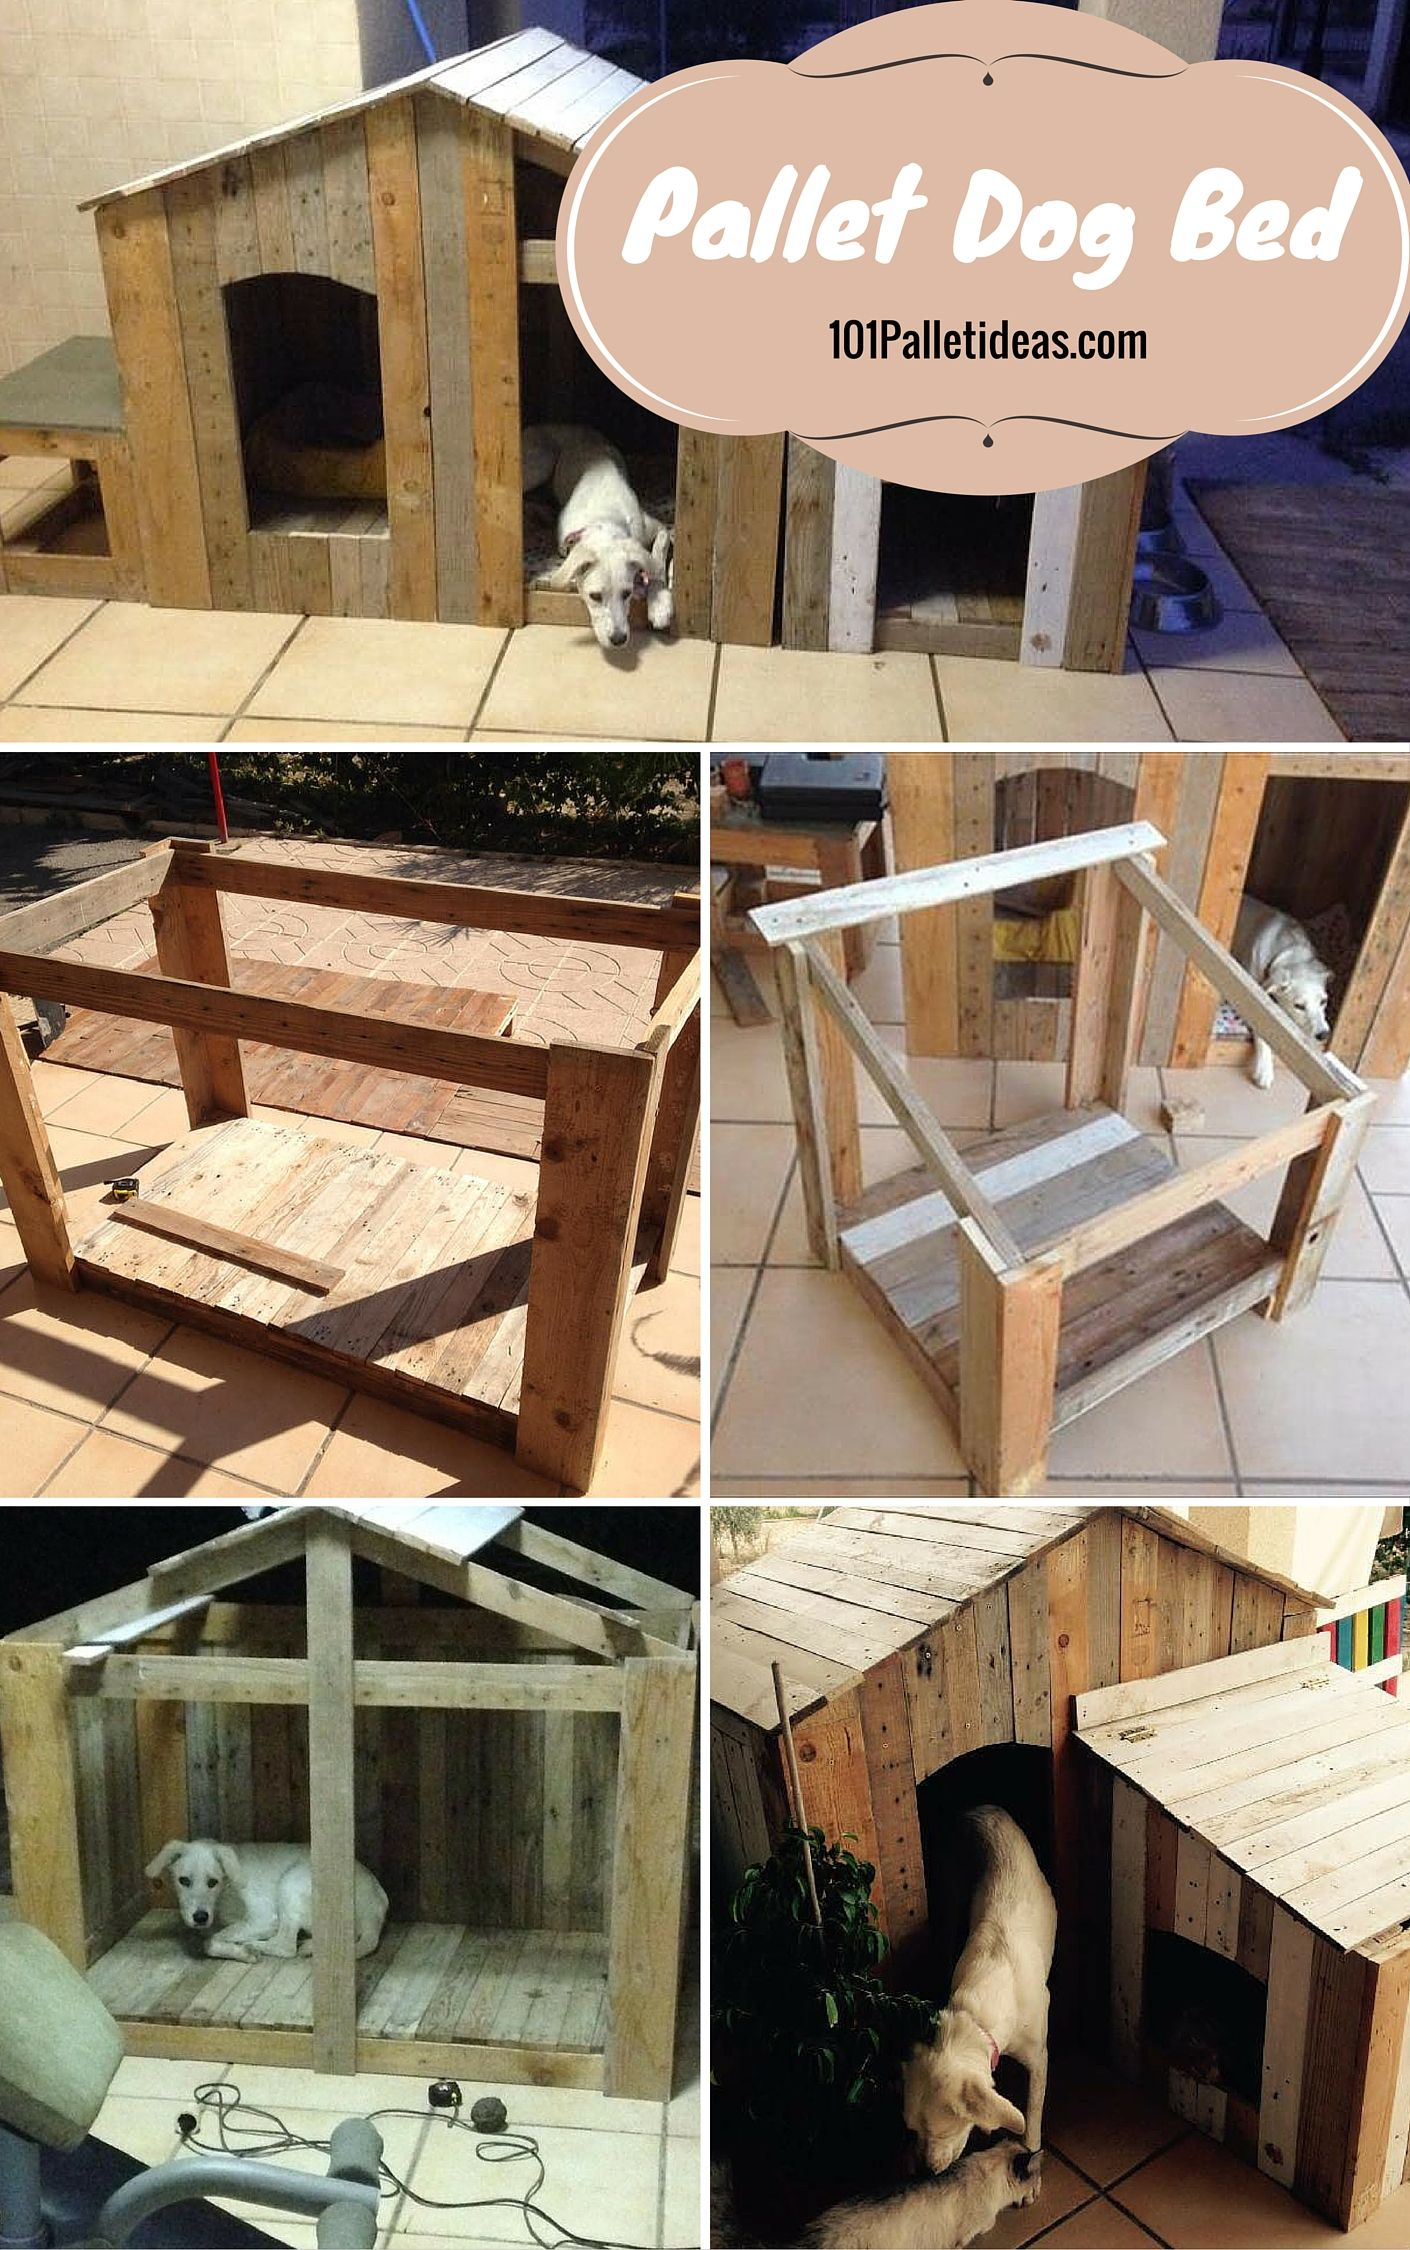 Wooden Pallet Dog House Plans 101 Pallet Ideas pet stuff